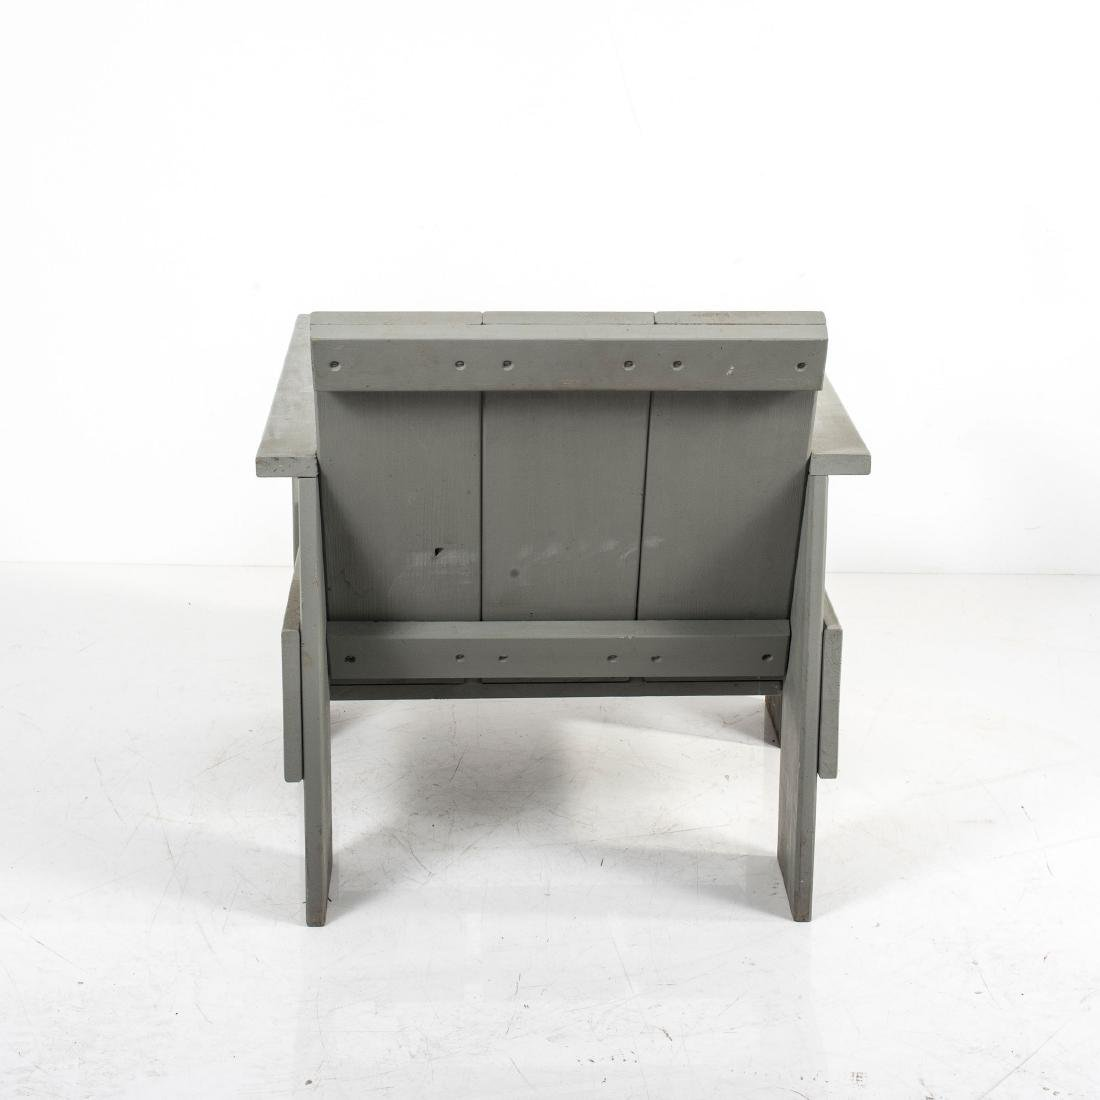 'Crate chair', 1934 - 5